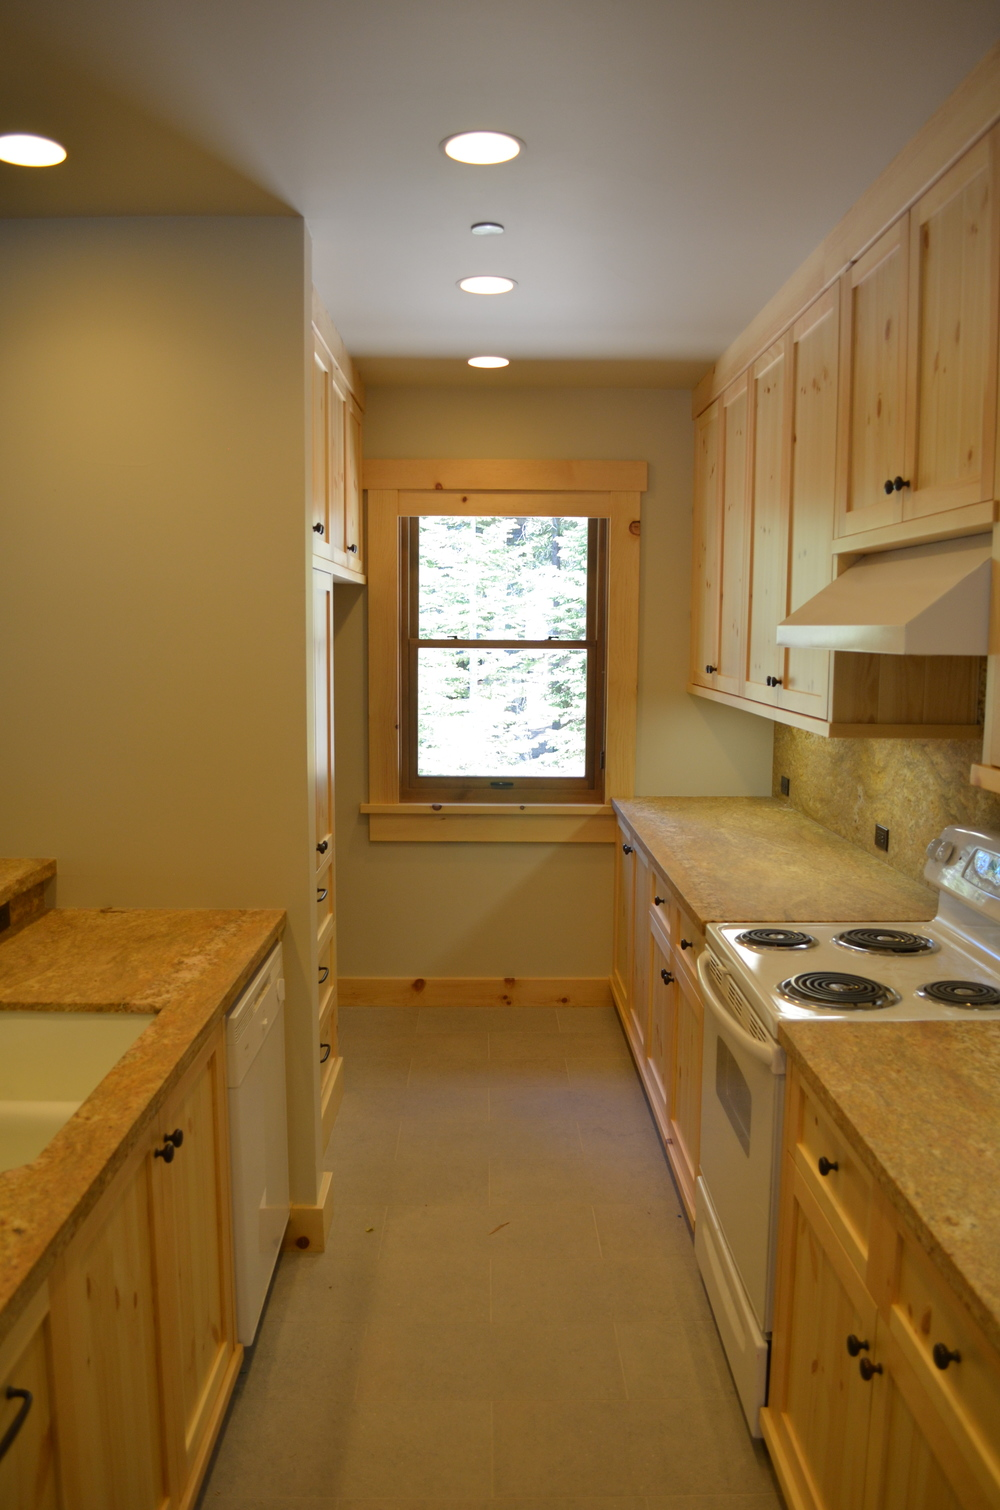 TAHOE KITCHEN 3.JPG